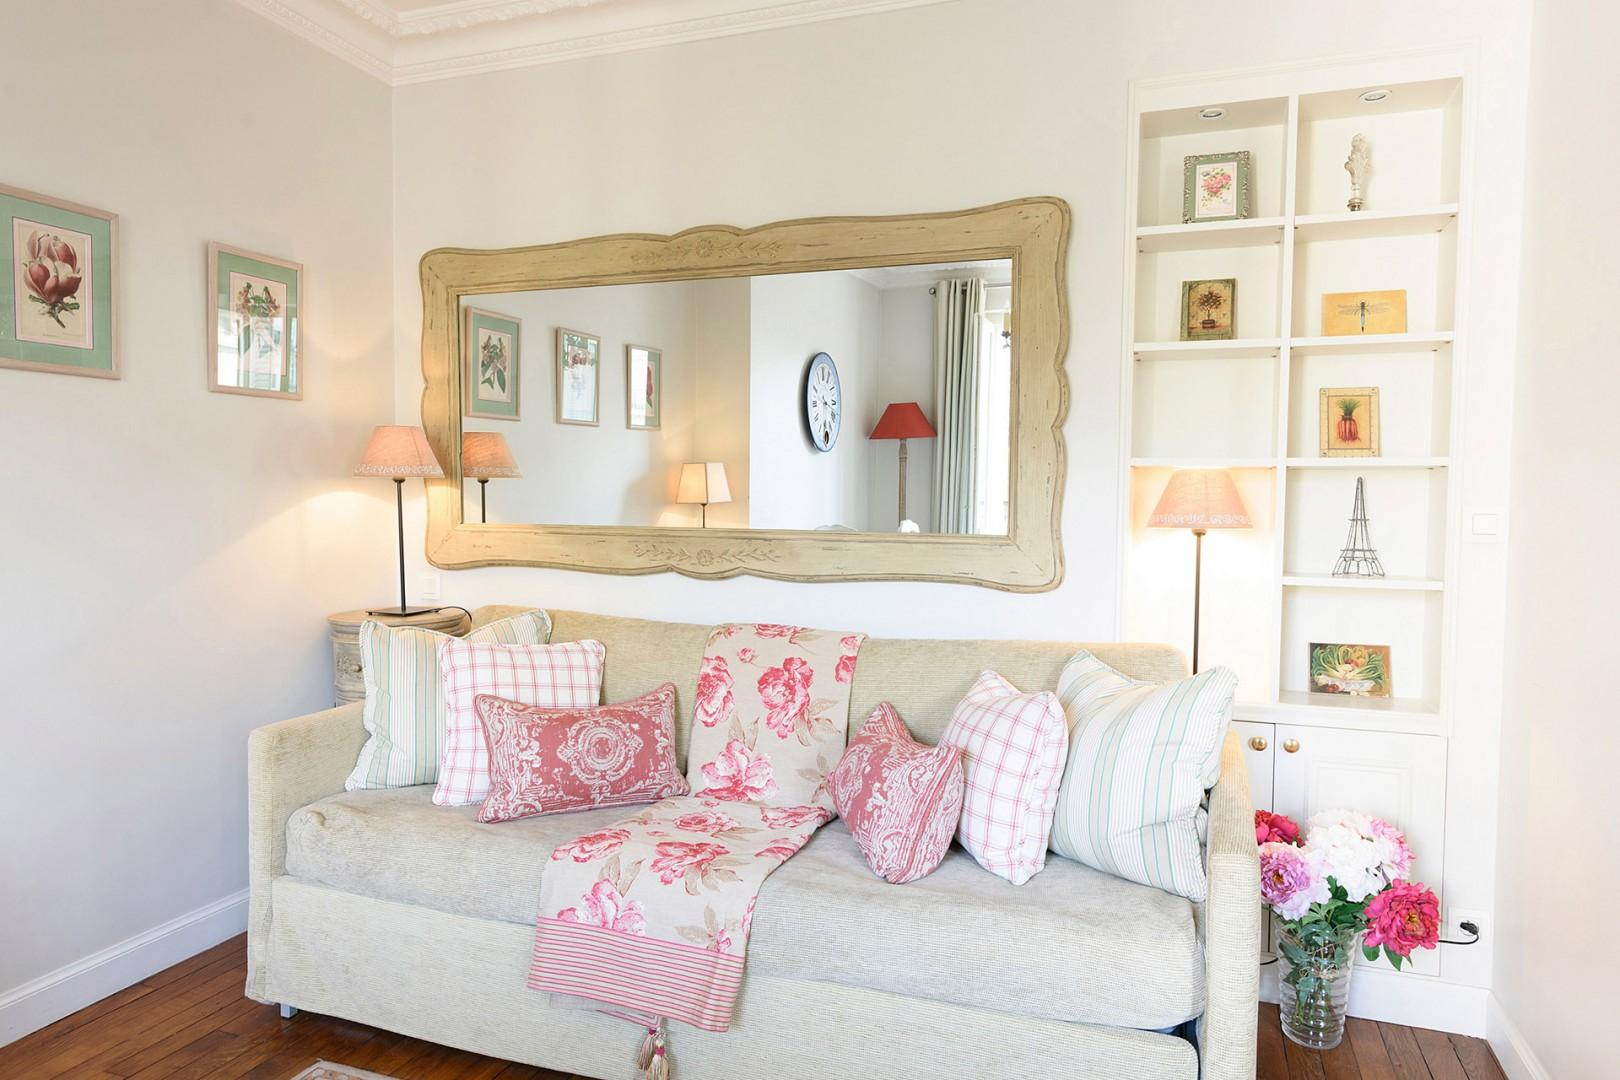 The separate seating area has a comfortable sofa with trundle that converts into two beds.